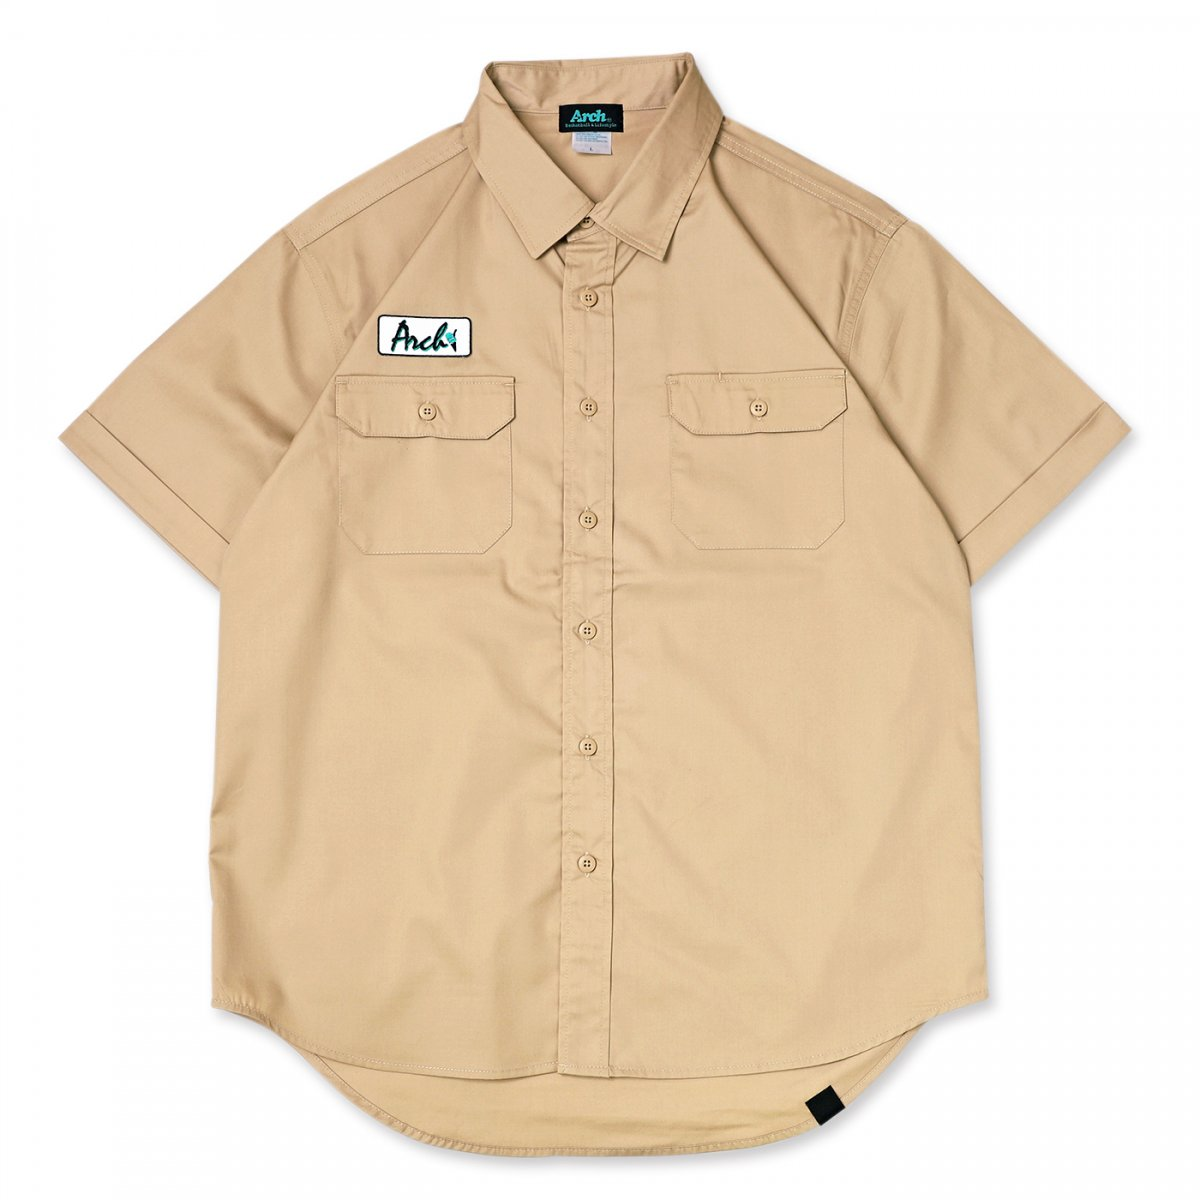 ice patch work shirt 【beige】